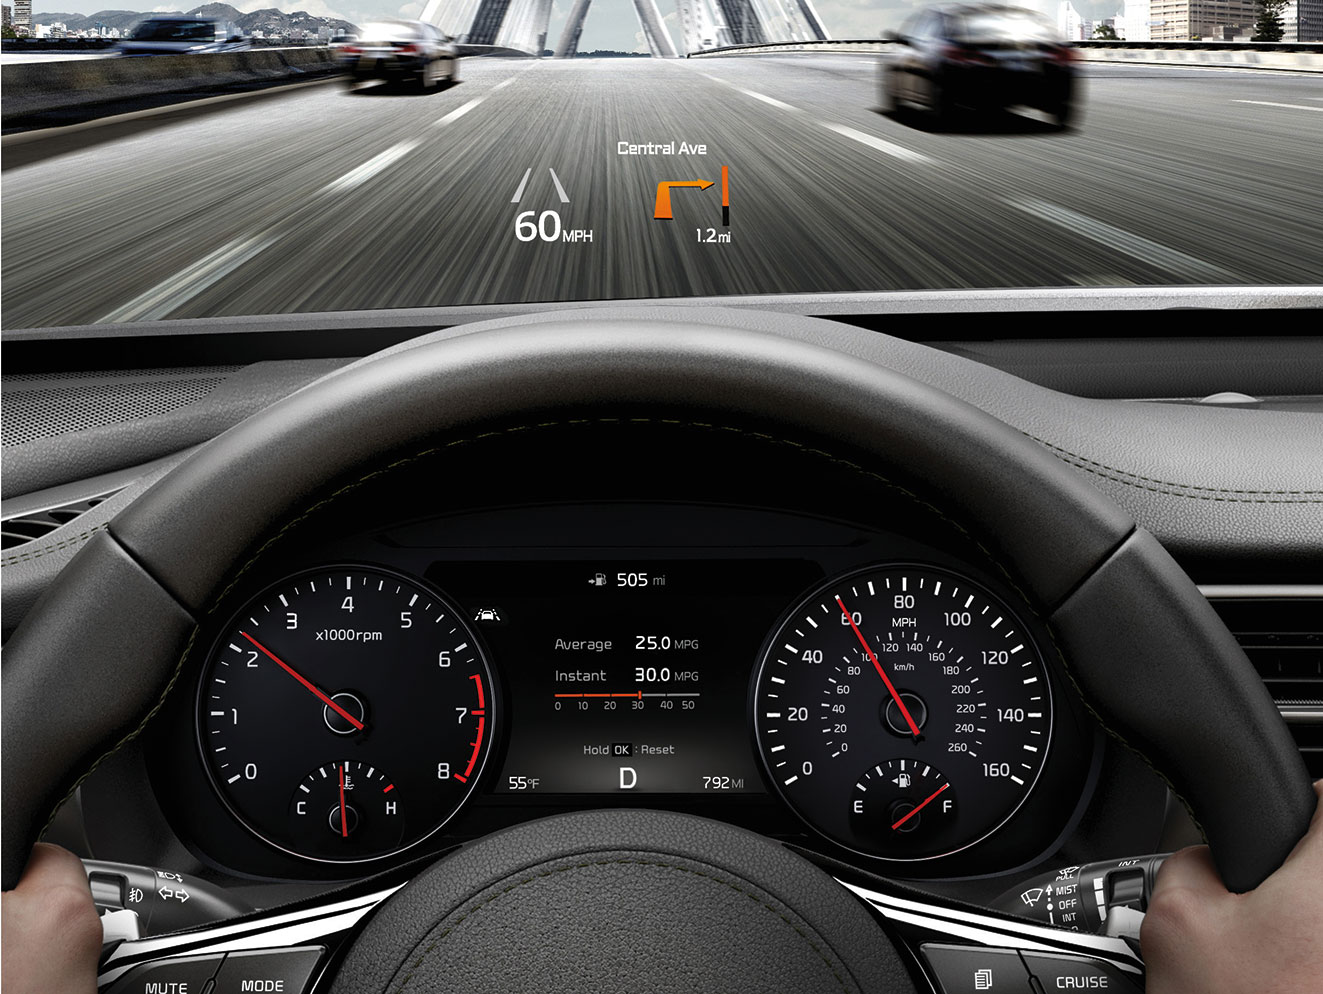 Interior view of Kia Cadenza racing across a bridge with head-up display projected on windshield